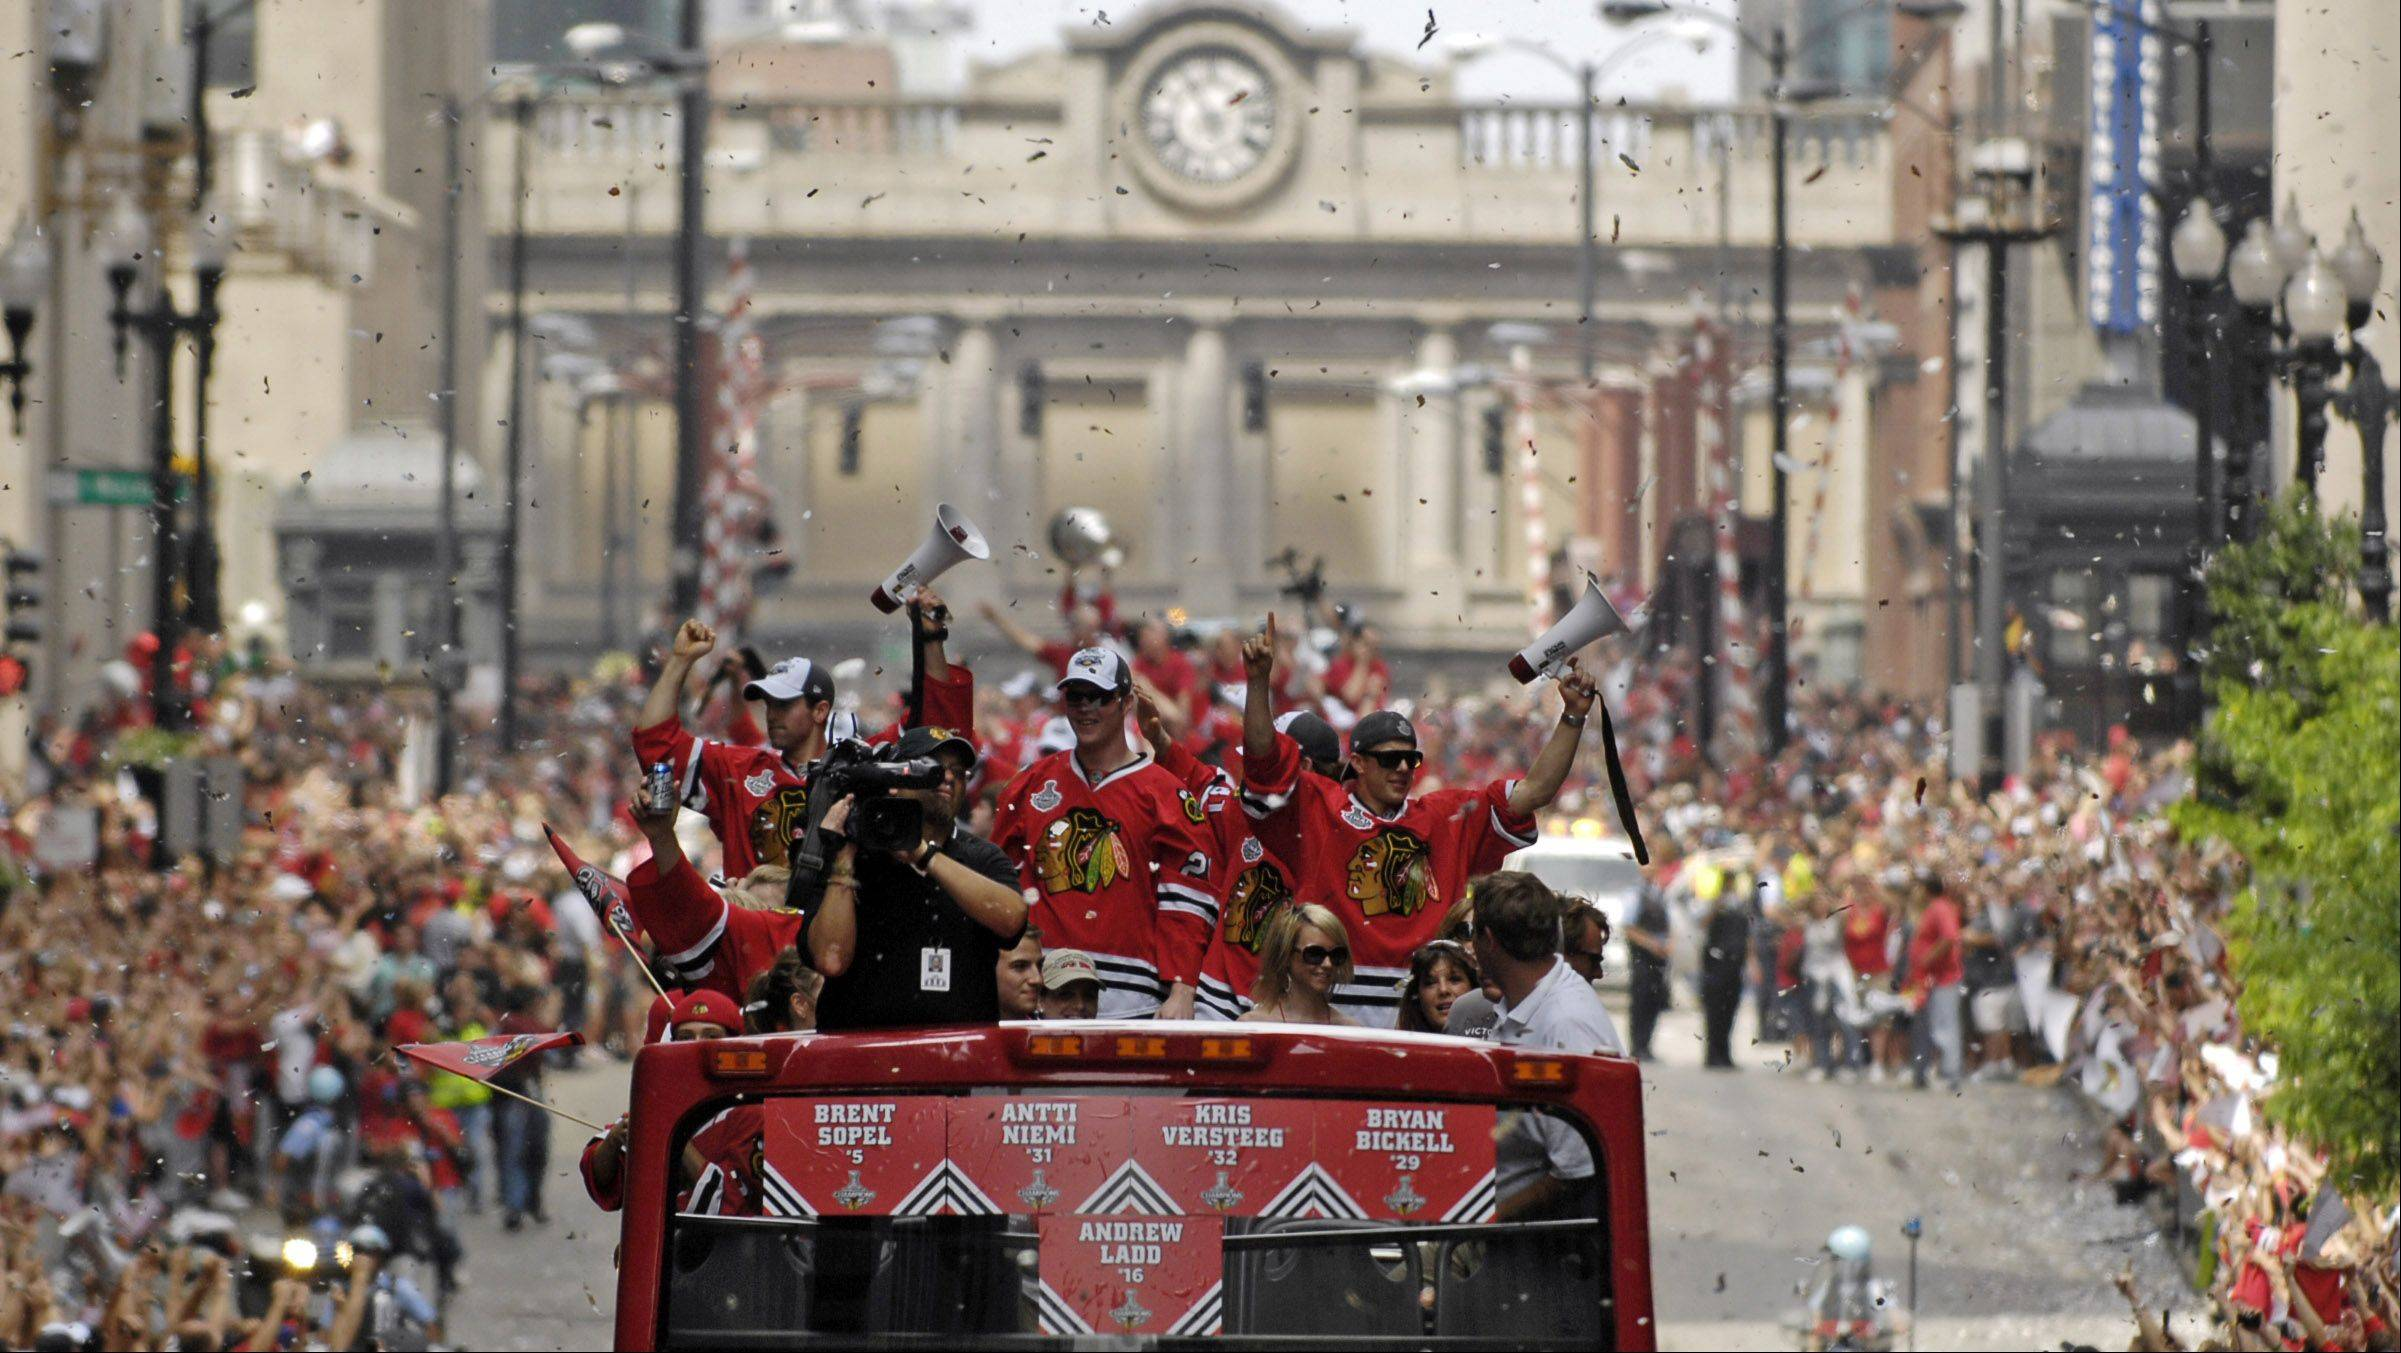 The Chicago Blackhawks enjoy their victory parade in downtown Chicago after their 2010 Stanley Cup Finals win over Philadelphia. It was the first time the Hawks took the Cup since 1961.